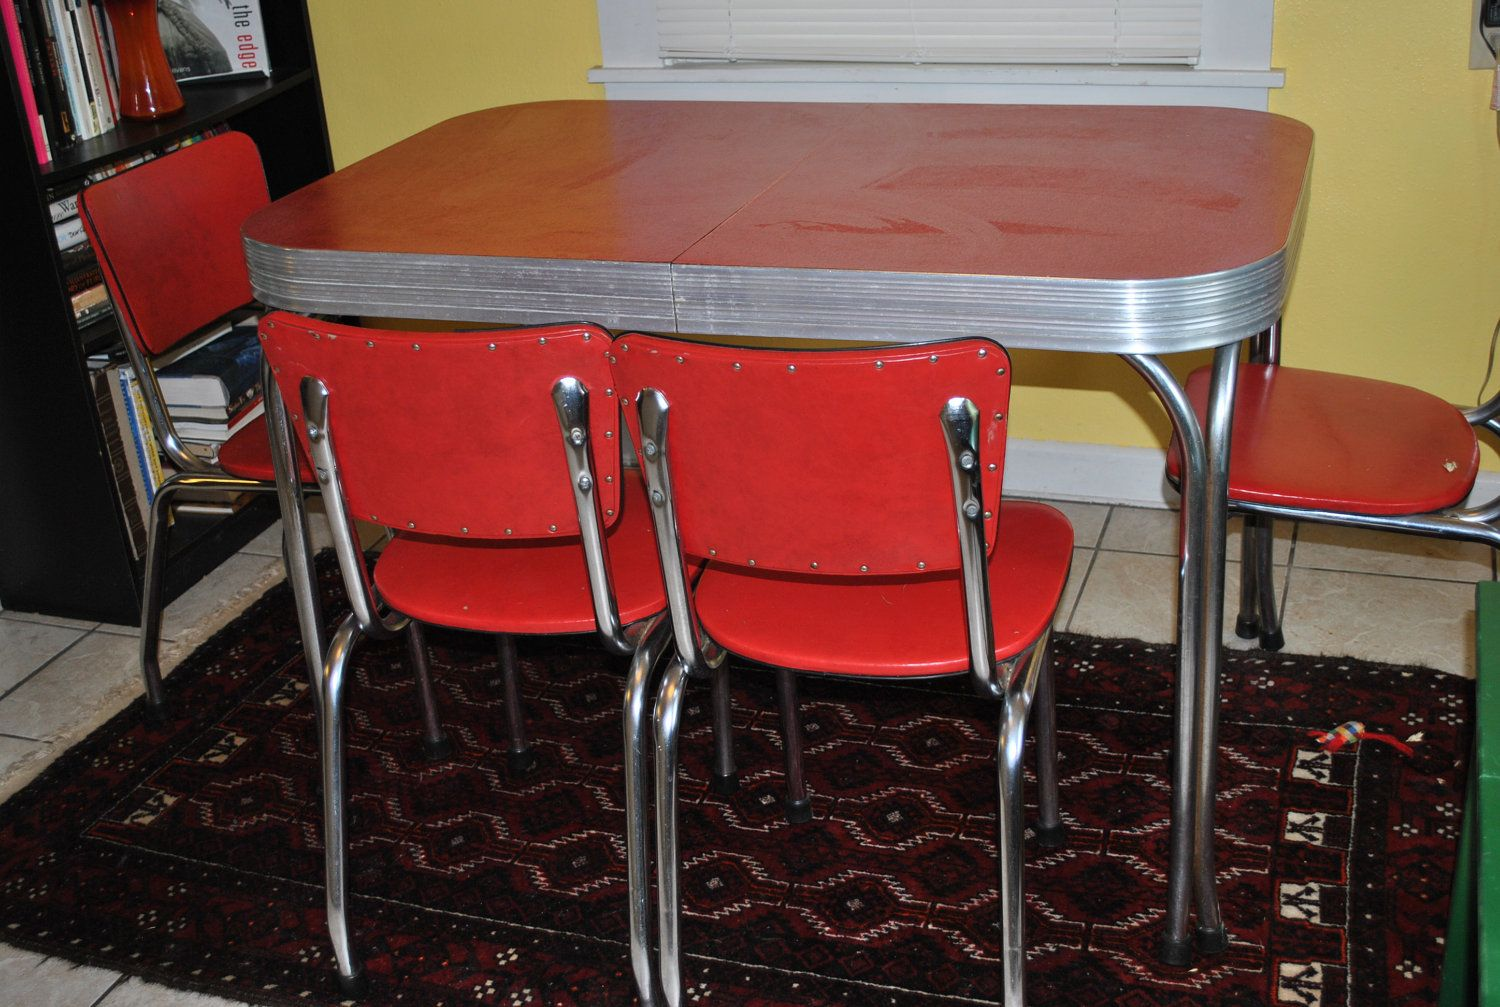 1950s Formica Kitchen Table And Chairs Wallpaper For Backsplash Vintage Red Chrome Dinette Set With 4